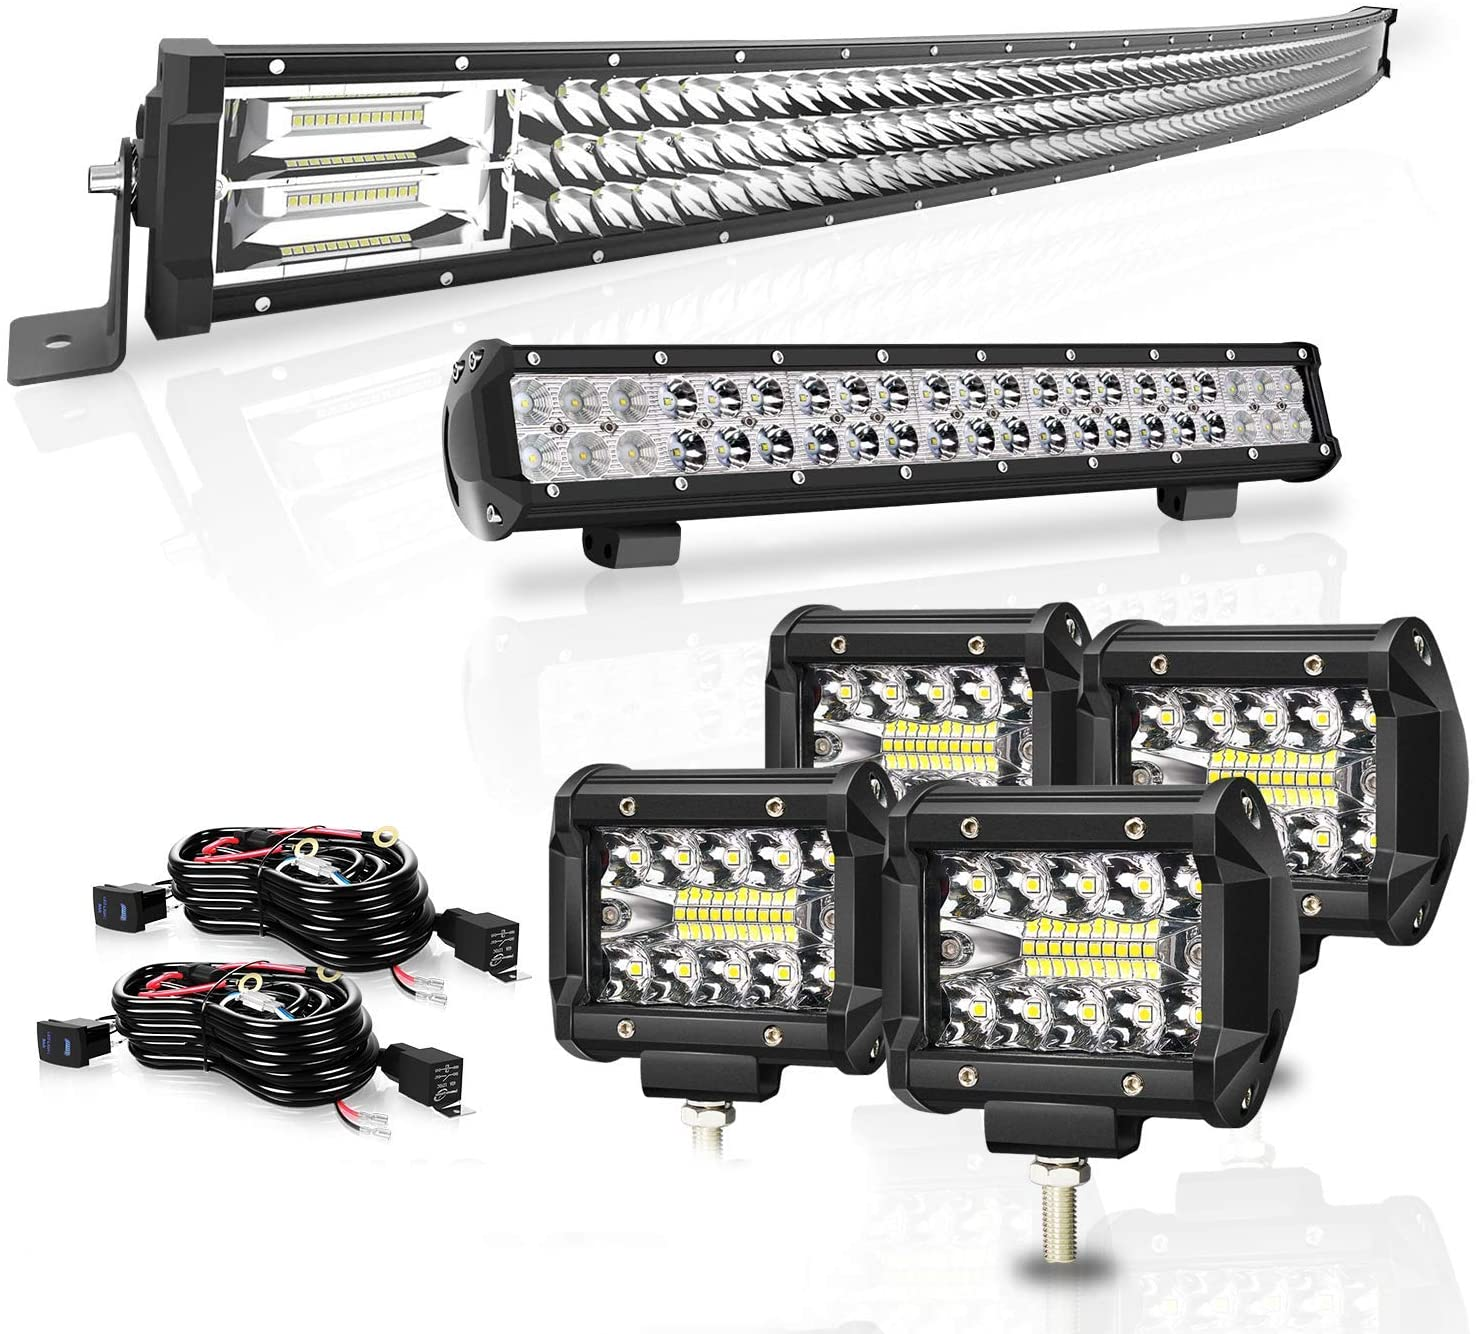 Led Light Bar 42 Inch 576W Curved Triple Row +20 Inch 126W Spot Flood Combo Beam Light bars 4Pcs 4 Inch 60W Led Fog Lights W/Rocker Switch Wiring Harness for Jeep Trucks ATV UTV Polaris Boats